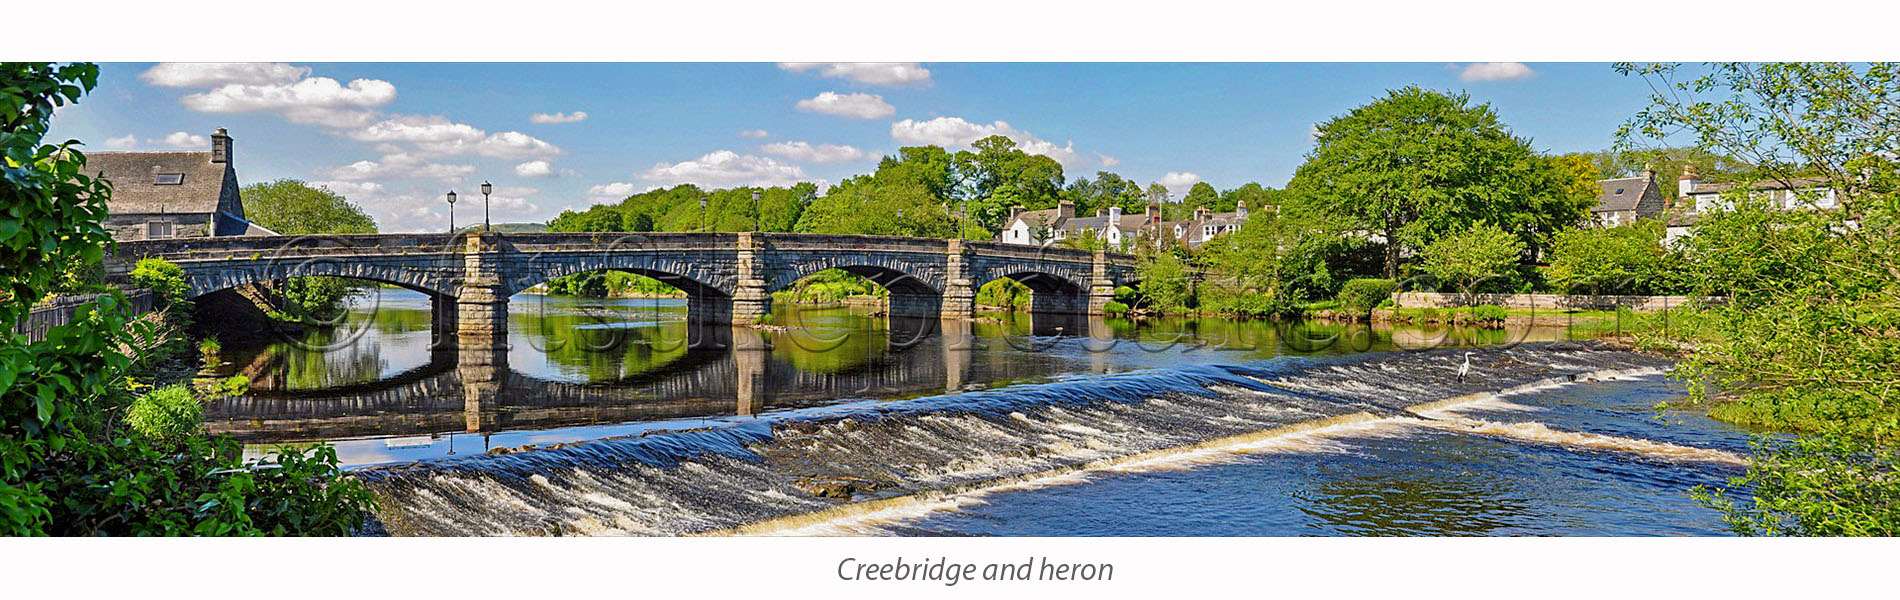 creebridge_summer_with_heron.jpg